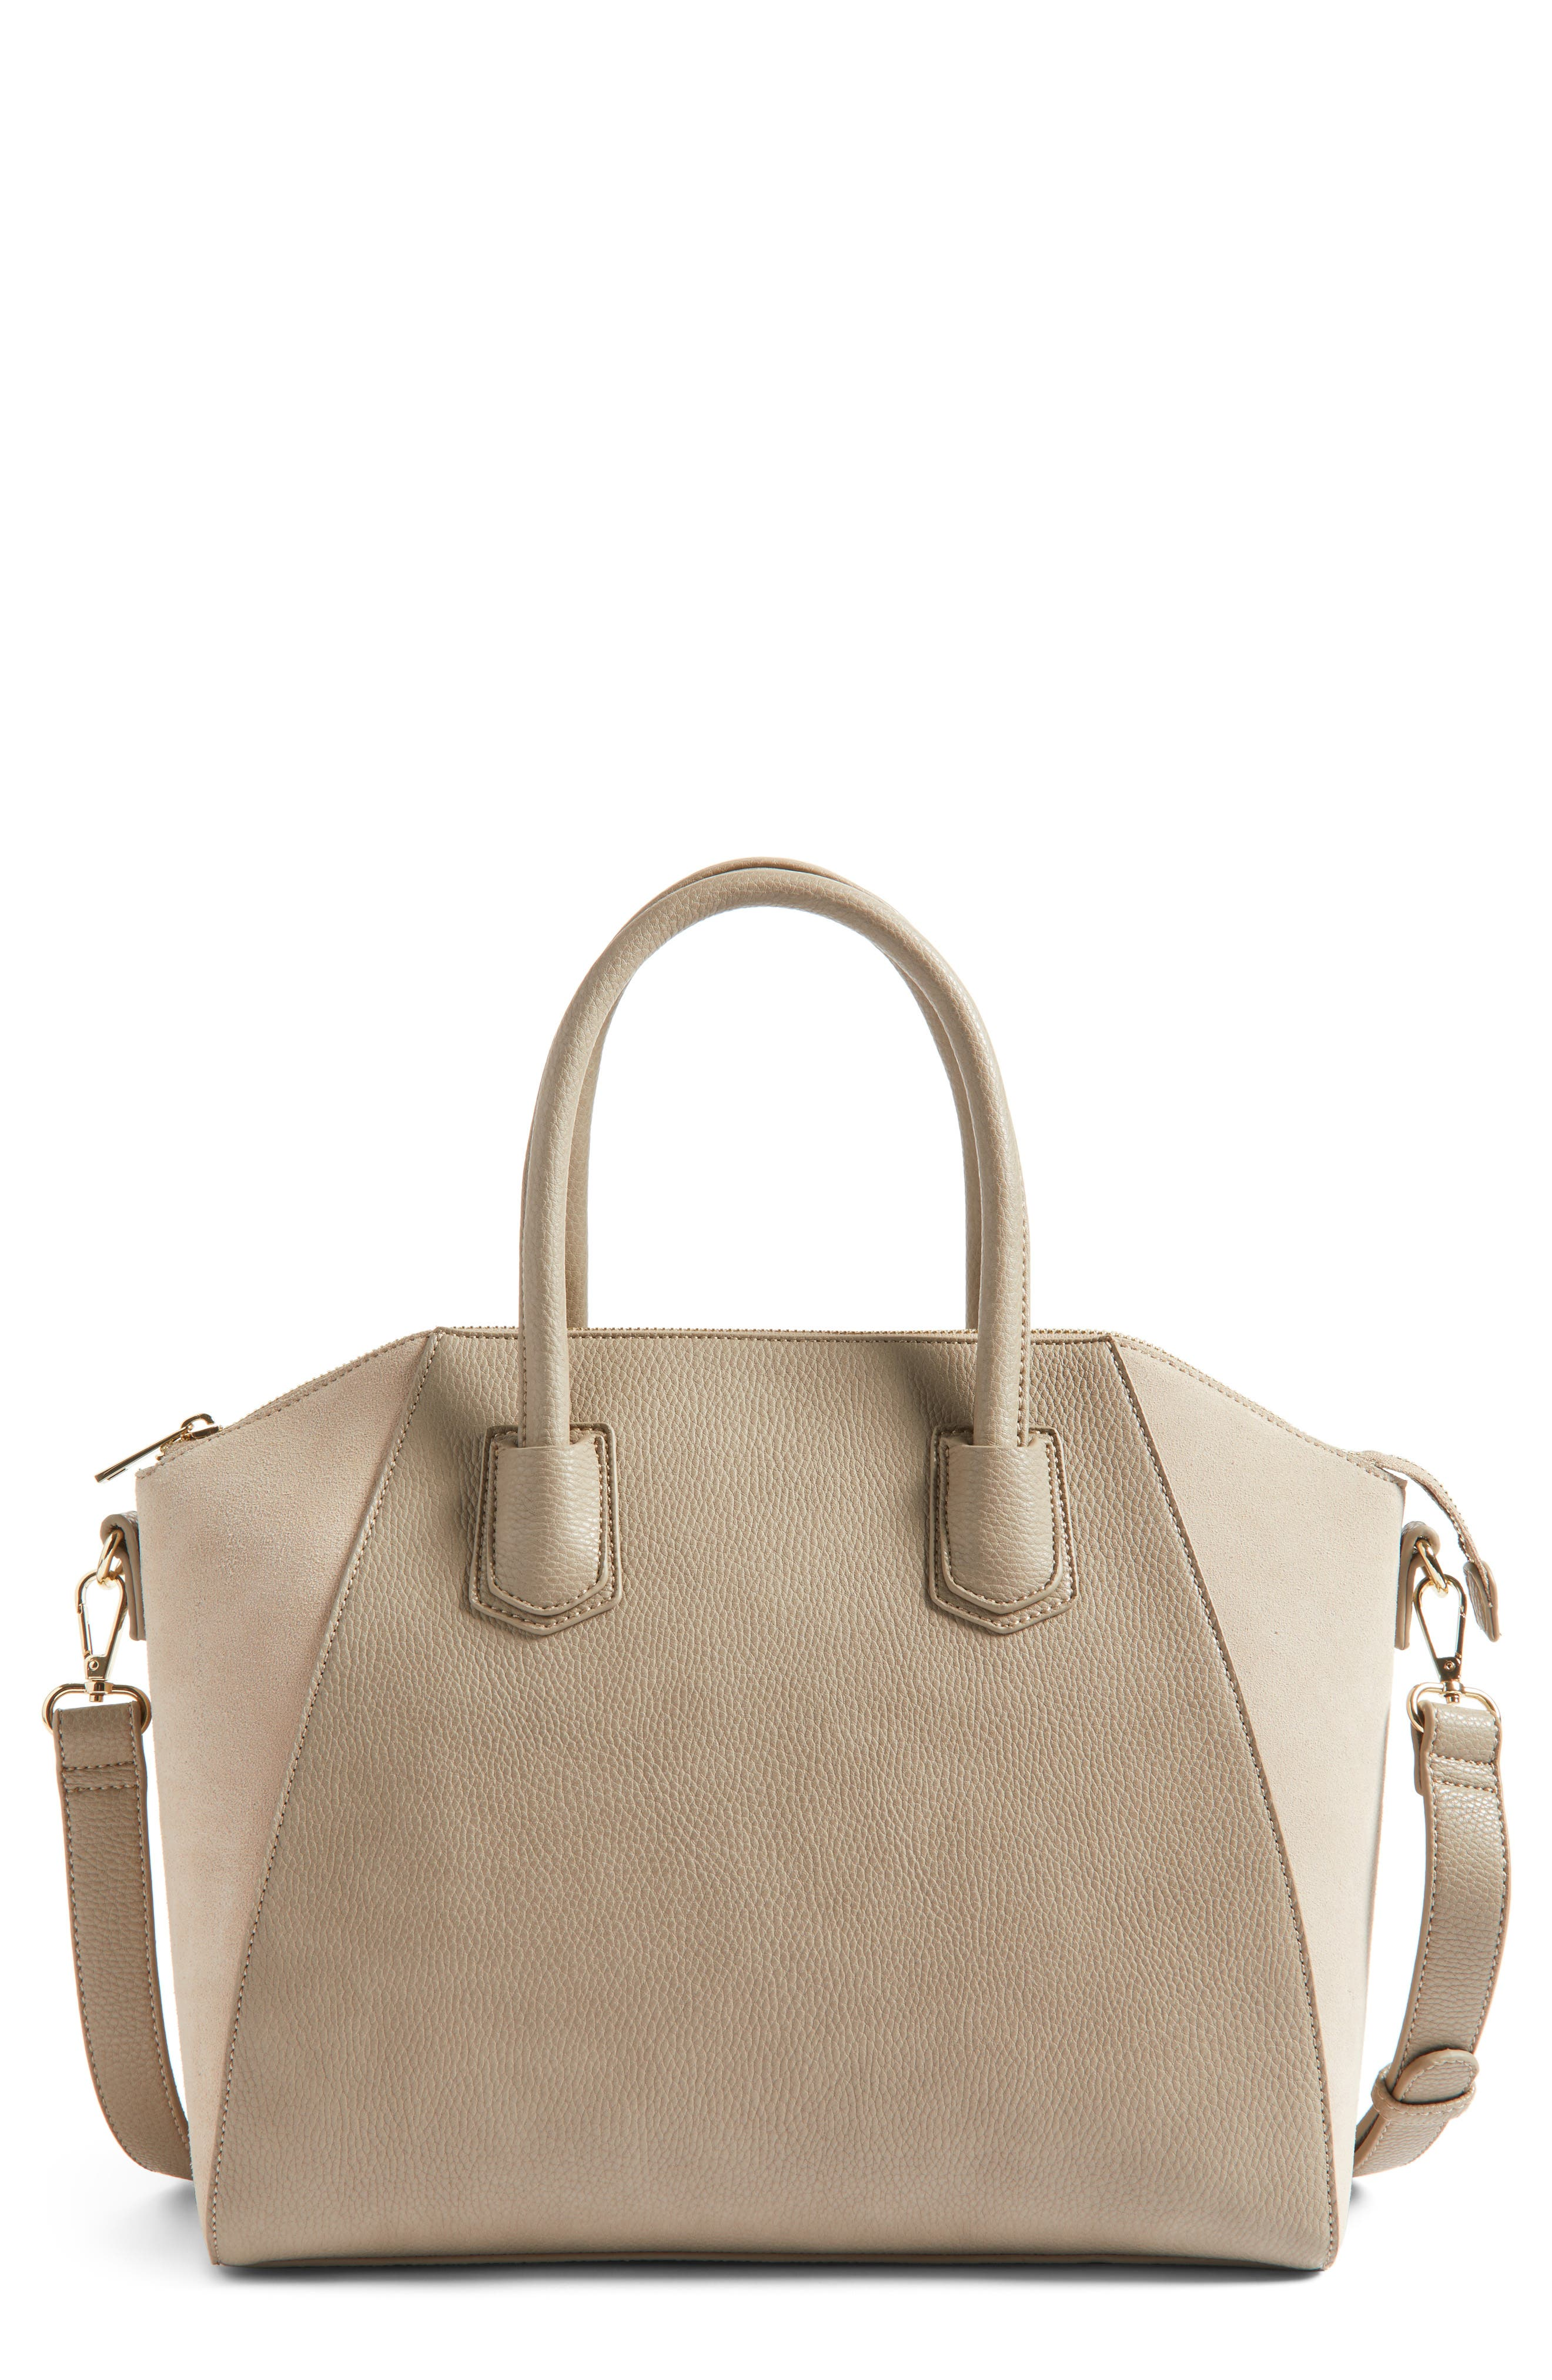 Alternate Image 1 Selected - Sole Society Mikayla Faux Leather & Suede Satchel